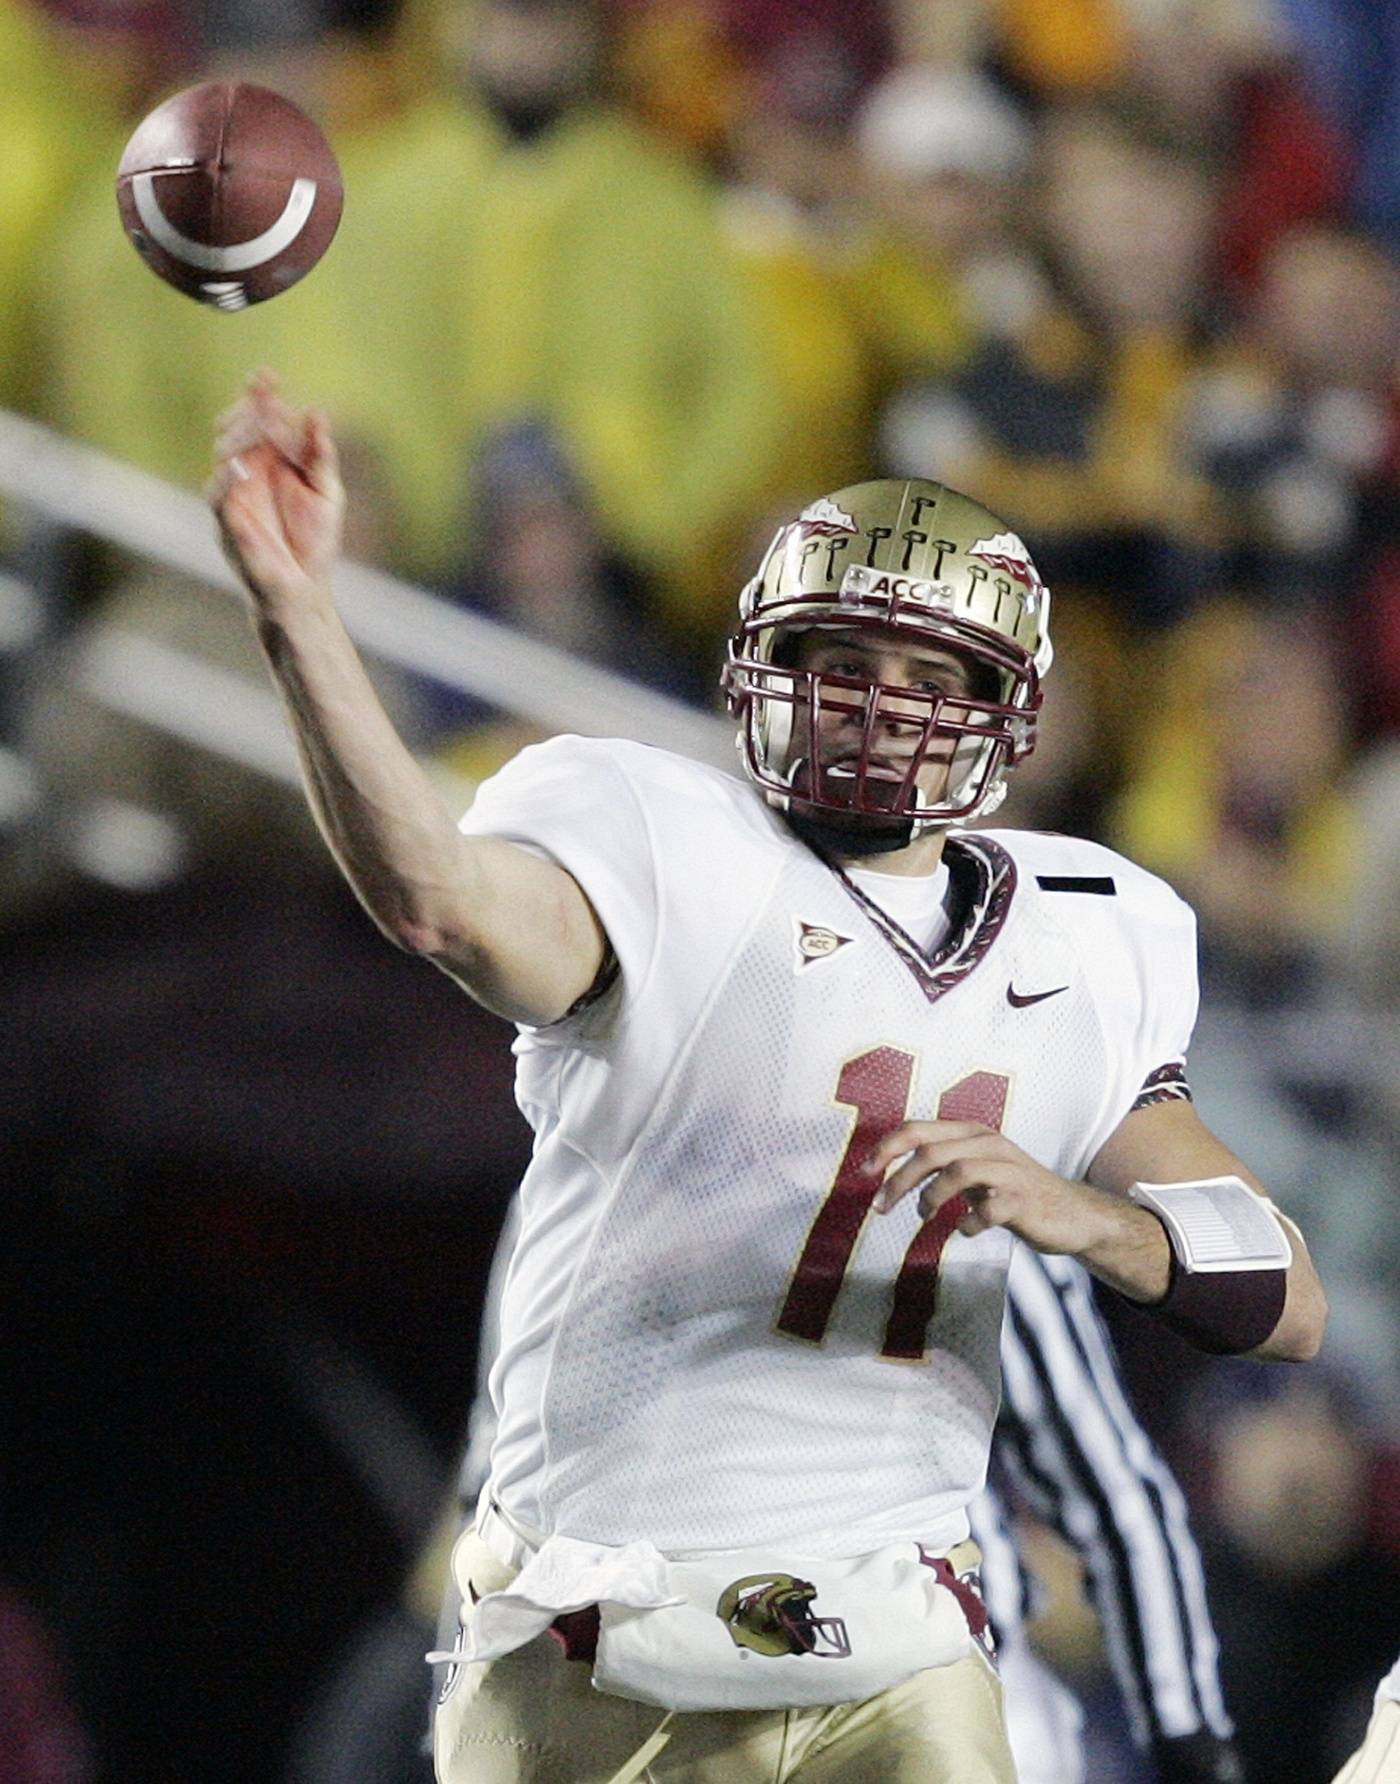 Florida State quarterback Drew Weatherford passes against Boston College in the second quarter of a football game Saturday, Nov. 3, 2007, in Boston. (AP Photo/Michael Dwyer)